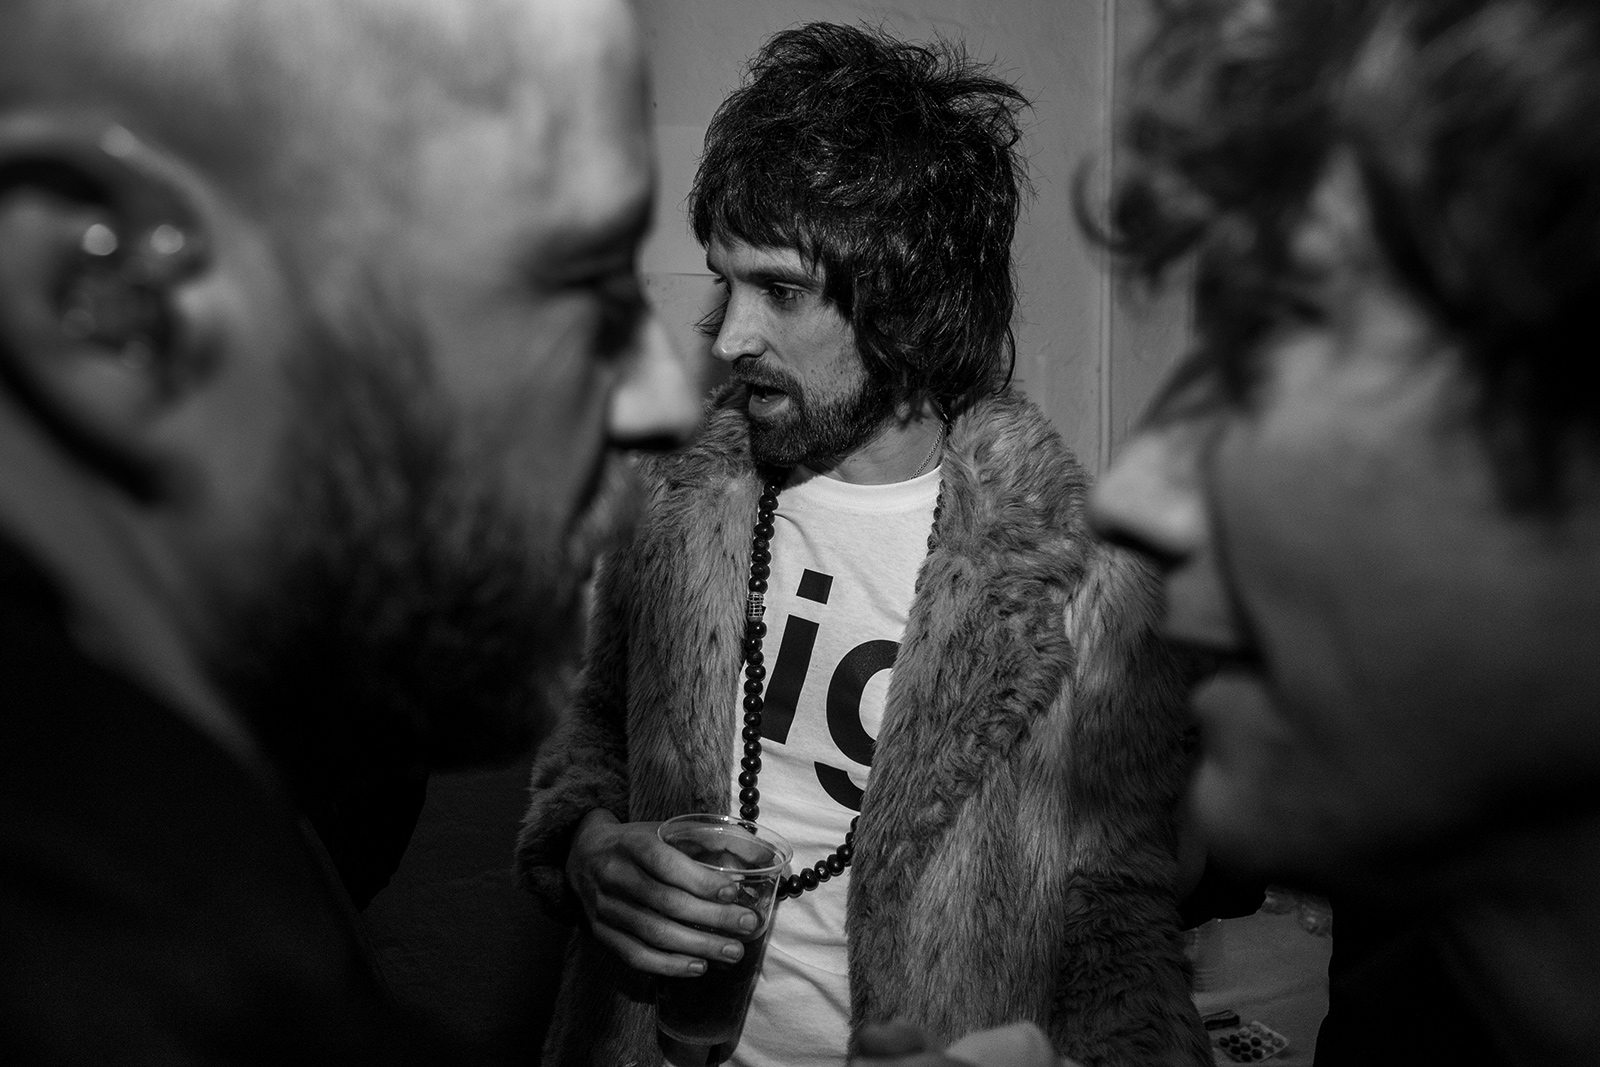 Kasabian: Sergio Pizzorno, Ben Kealey, Tim